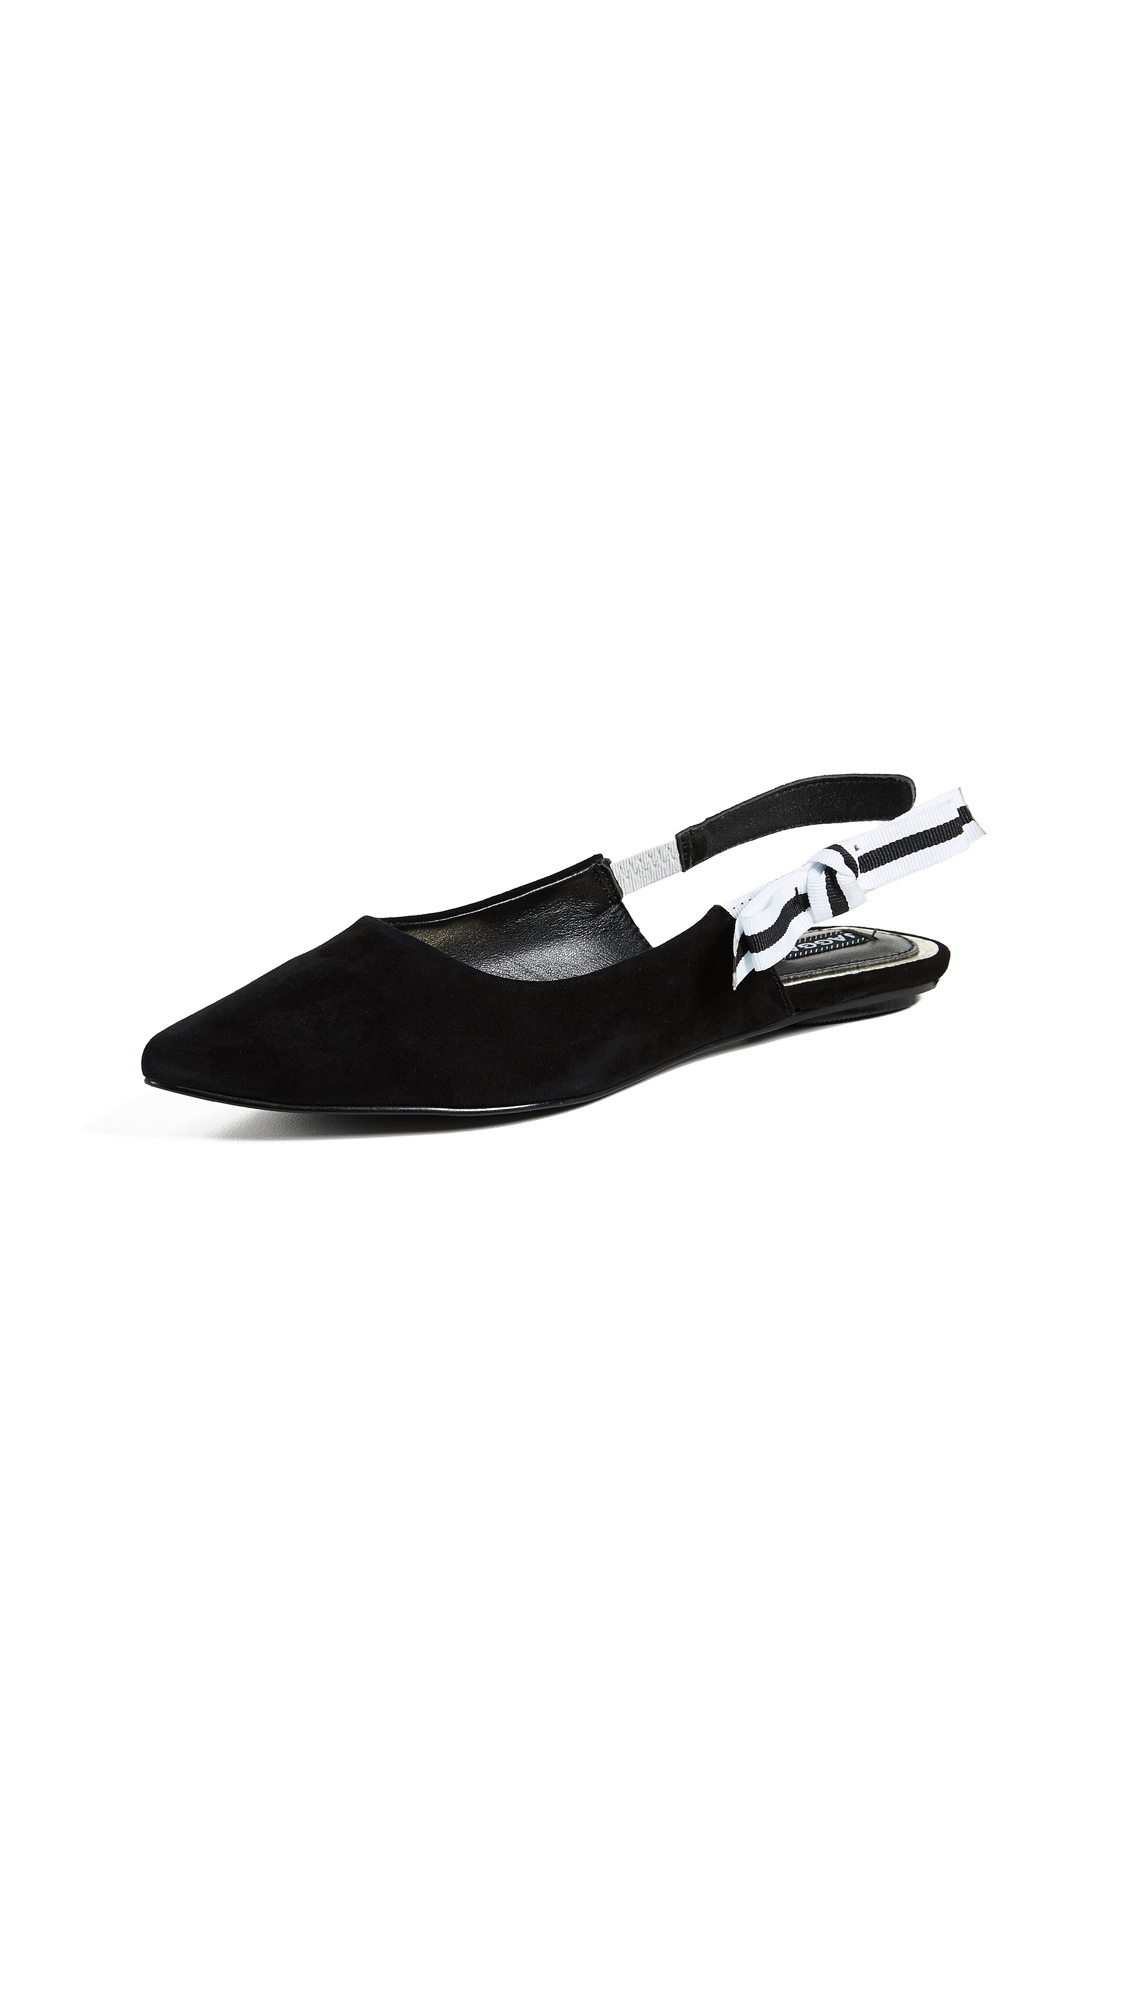 JAGGAR Slight Point Toe Slingback Flats - Black